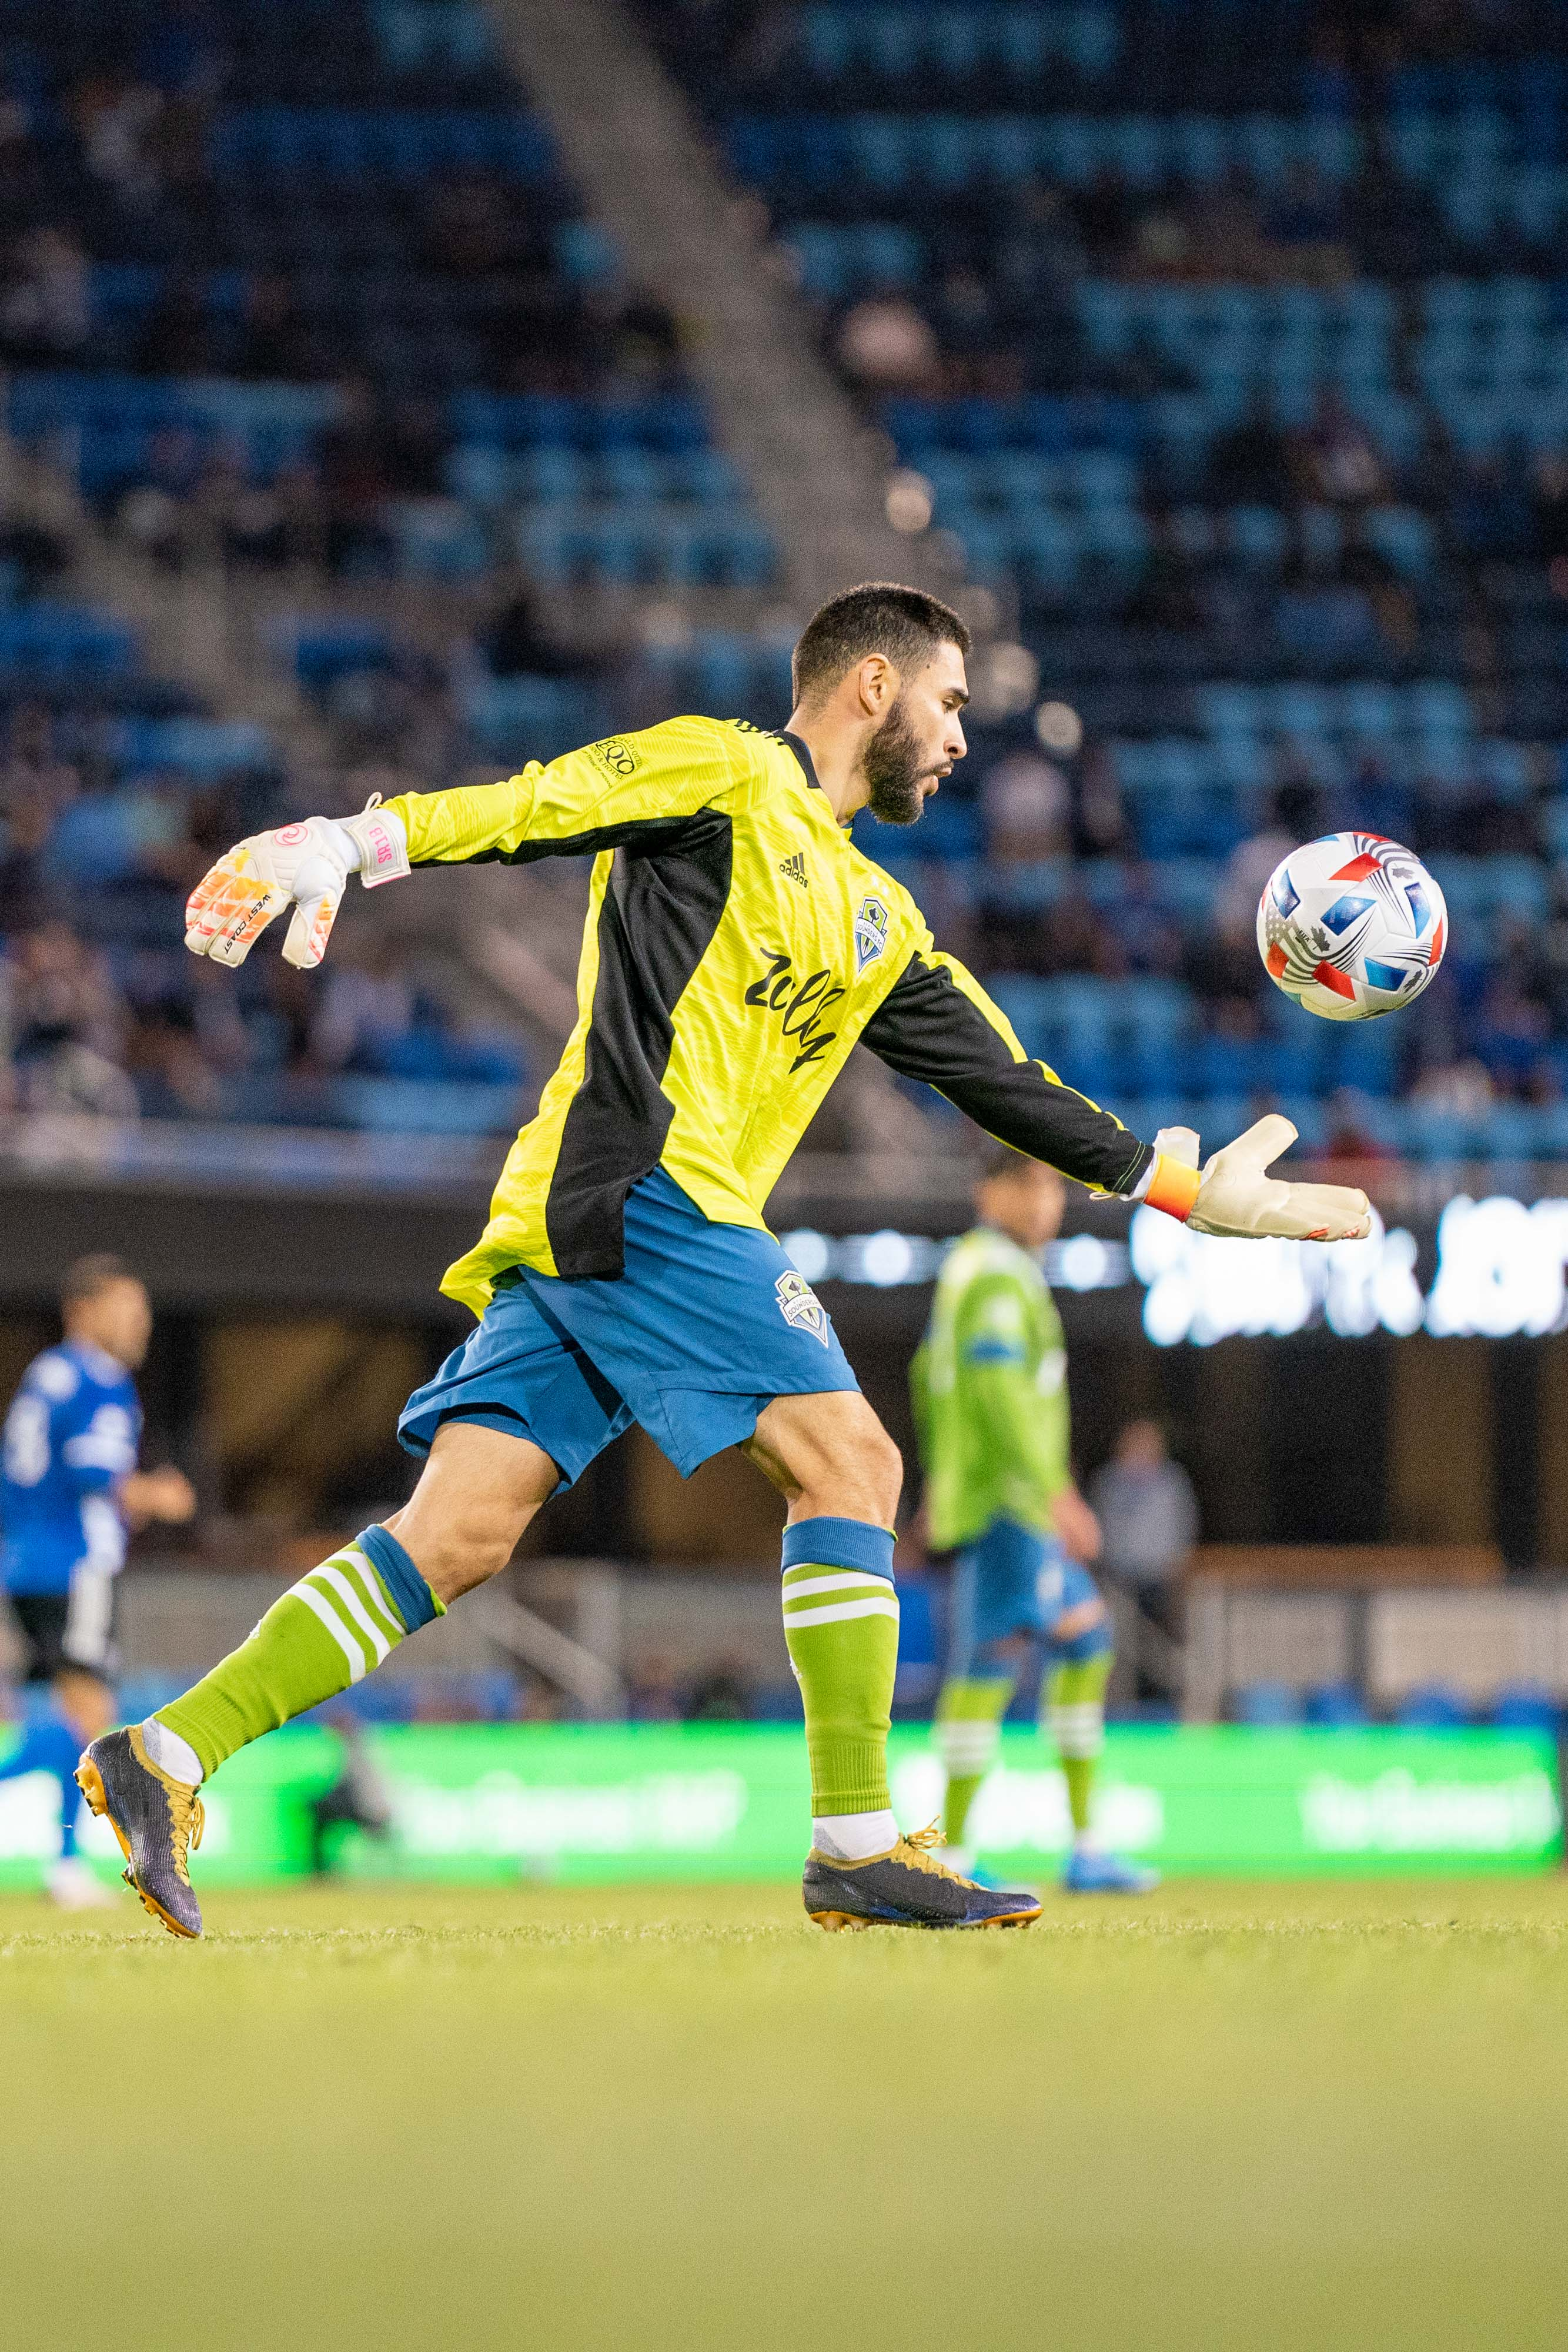 MLS notebook: Concacaf Gold Cup will feature pair of brothers playing for two different countries